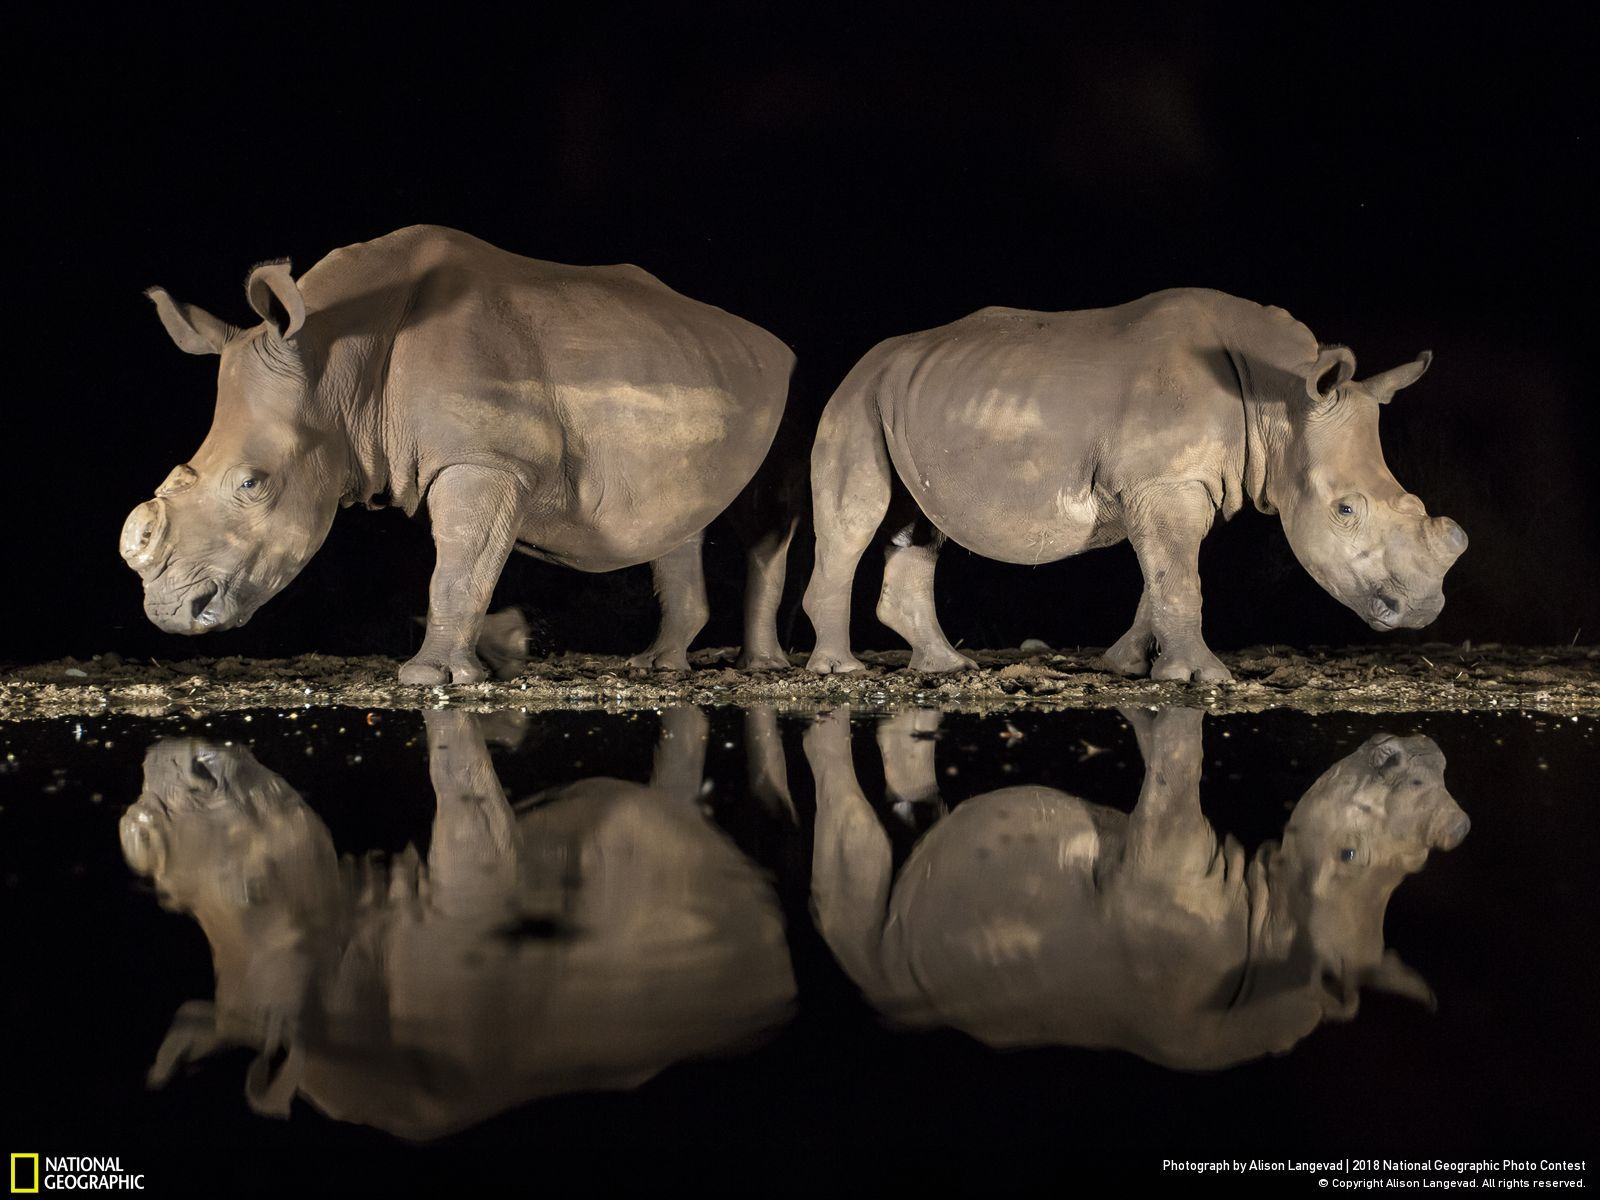 Troisième Prix Wildlife National Geographic Photo Contest, A New Look par Alison Langevad